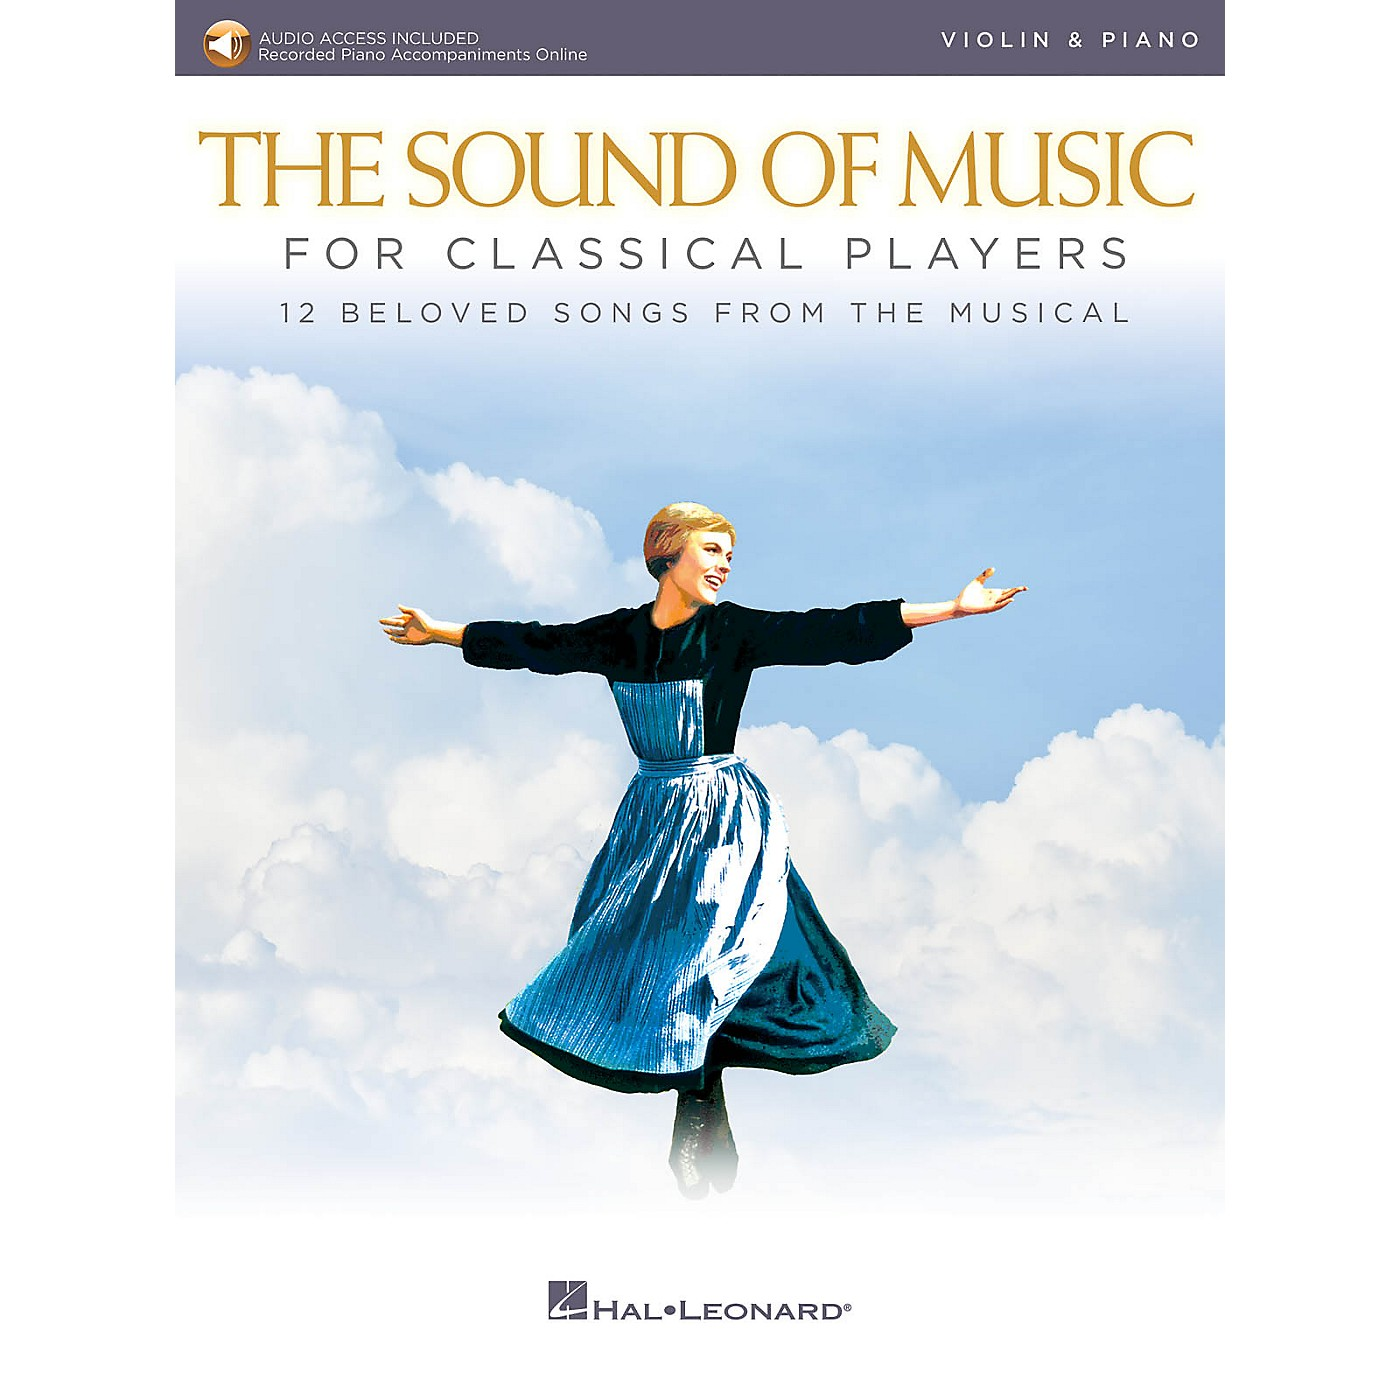 Hal Leonard The Sound of Music for Classical Players - Violin and Piano Book/Audio Online thumbnail